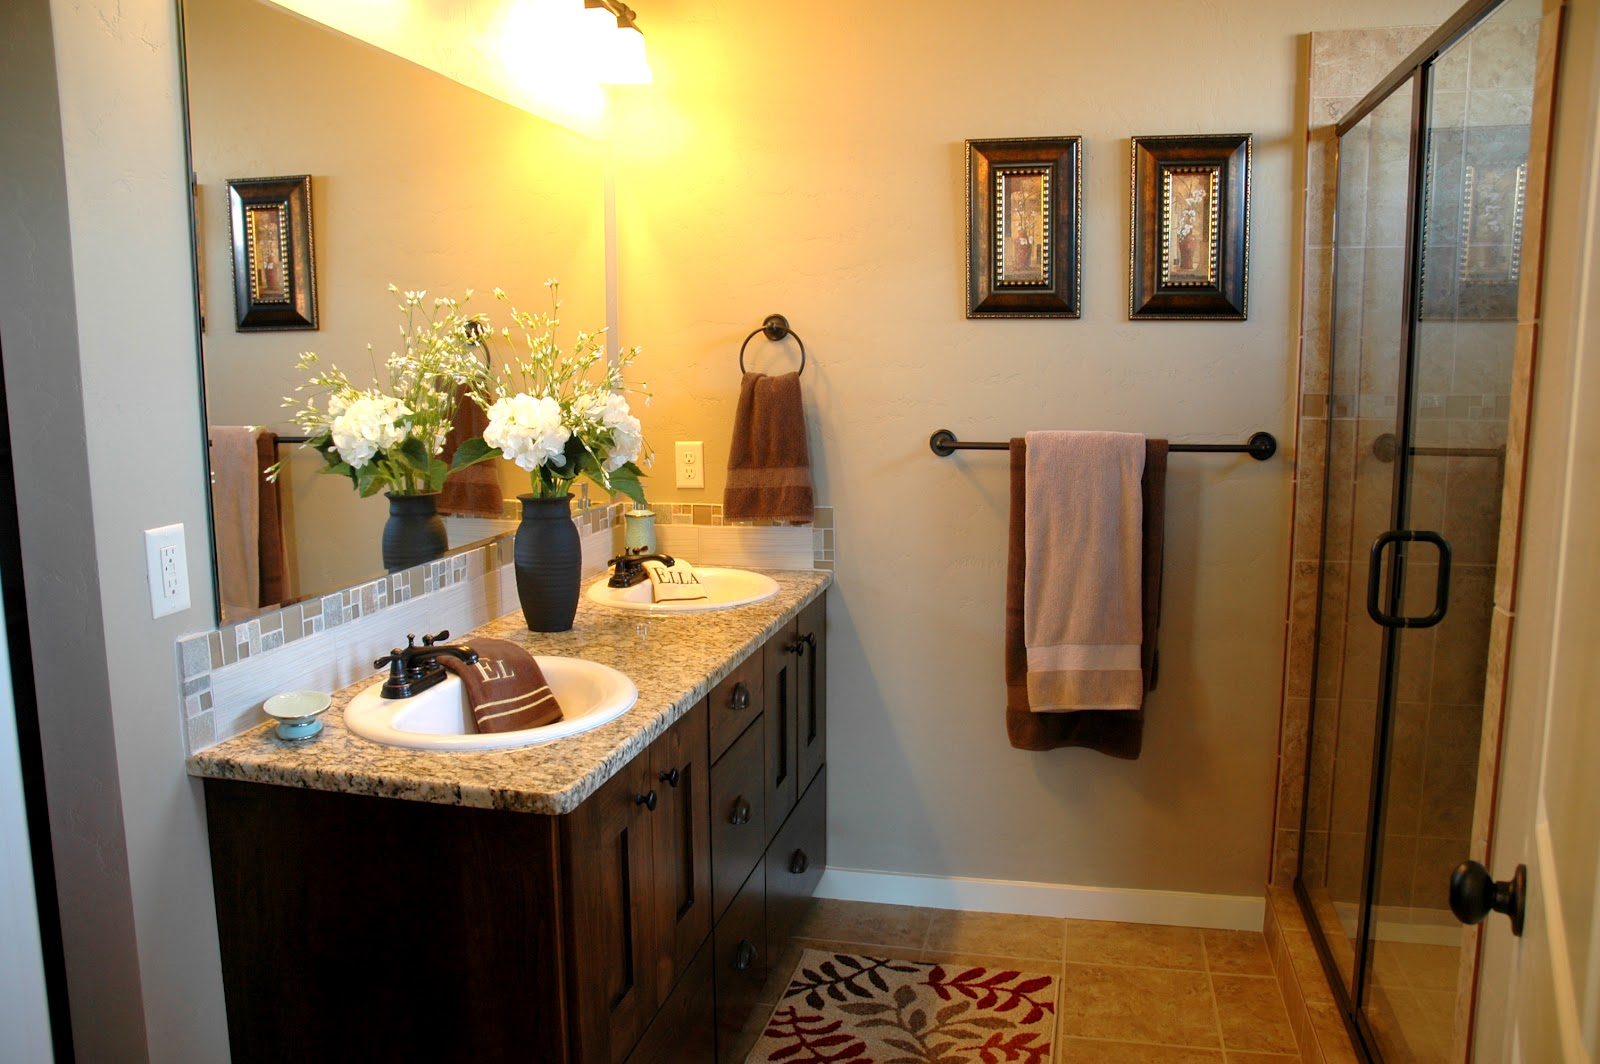 Staging bathrooms 28 images staged bathroom home for Staging bathroom ideas